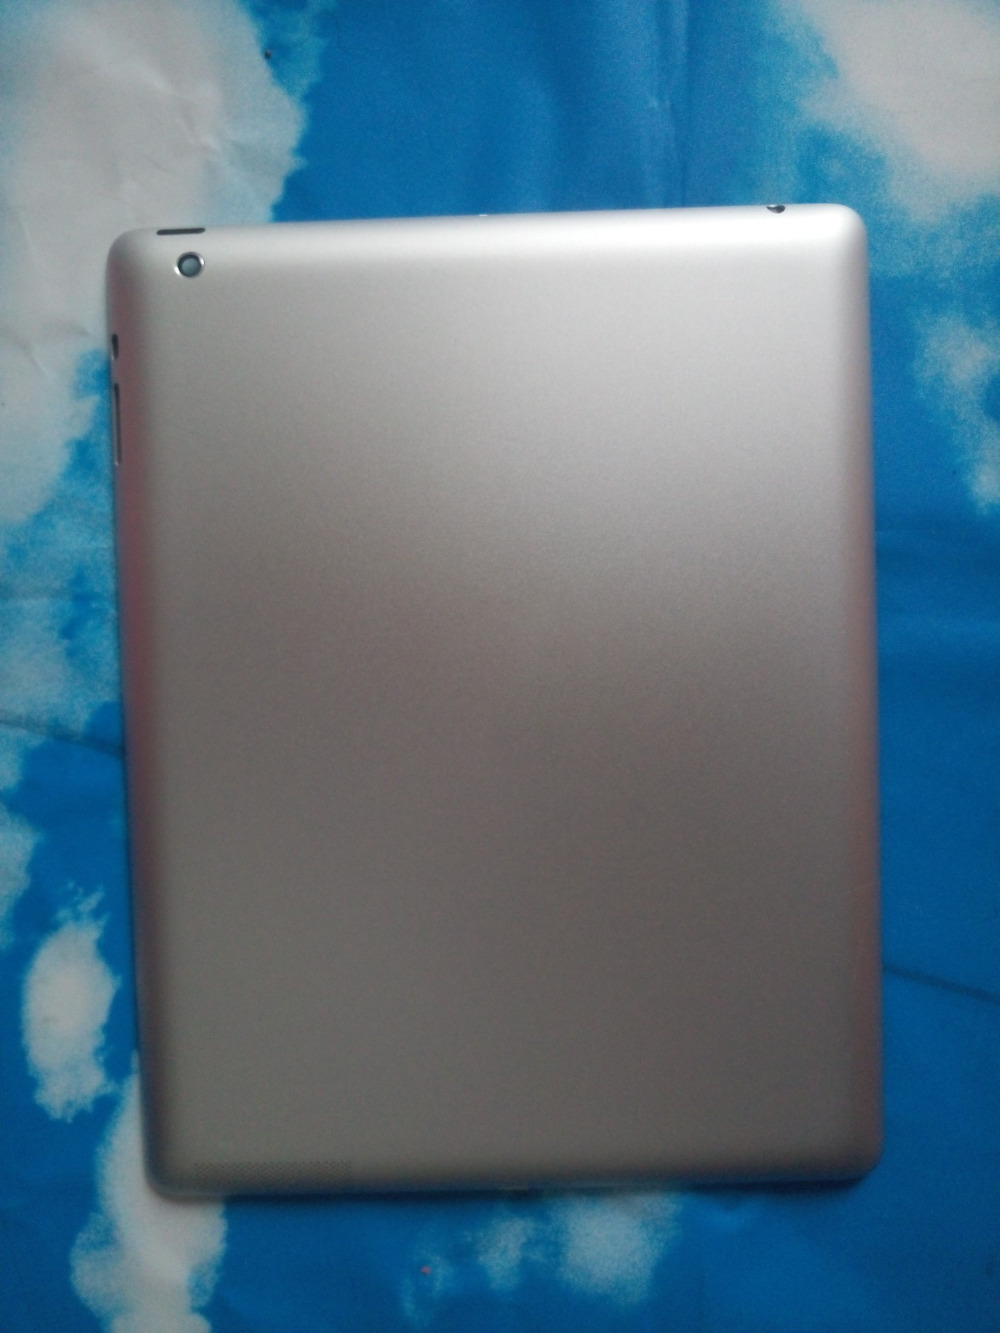 1pcs New For Ipad 4 Back Cover A1458 WIFI 4G version A1460 Battery Door Back Case